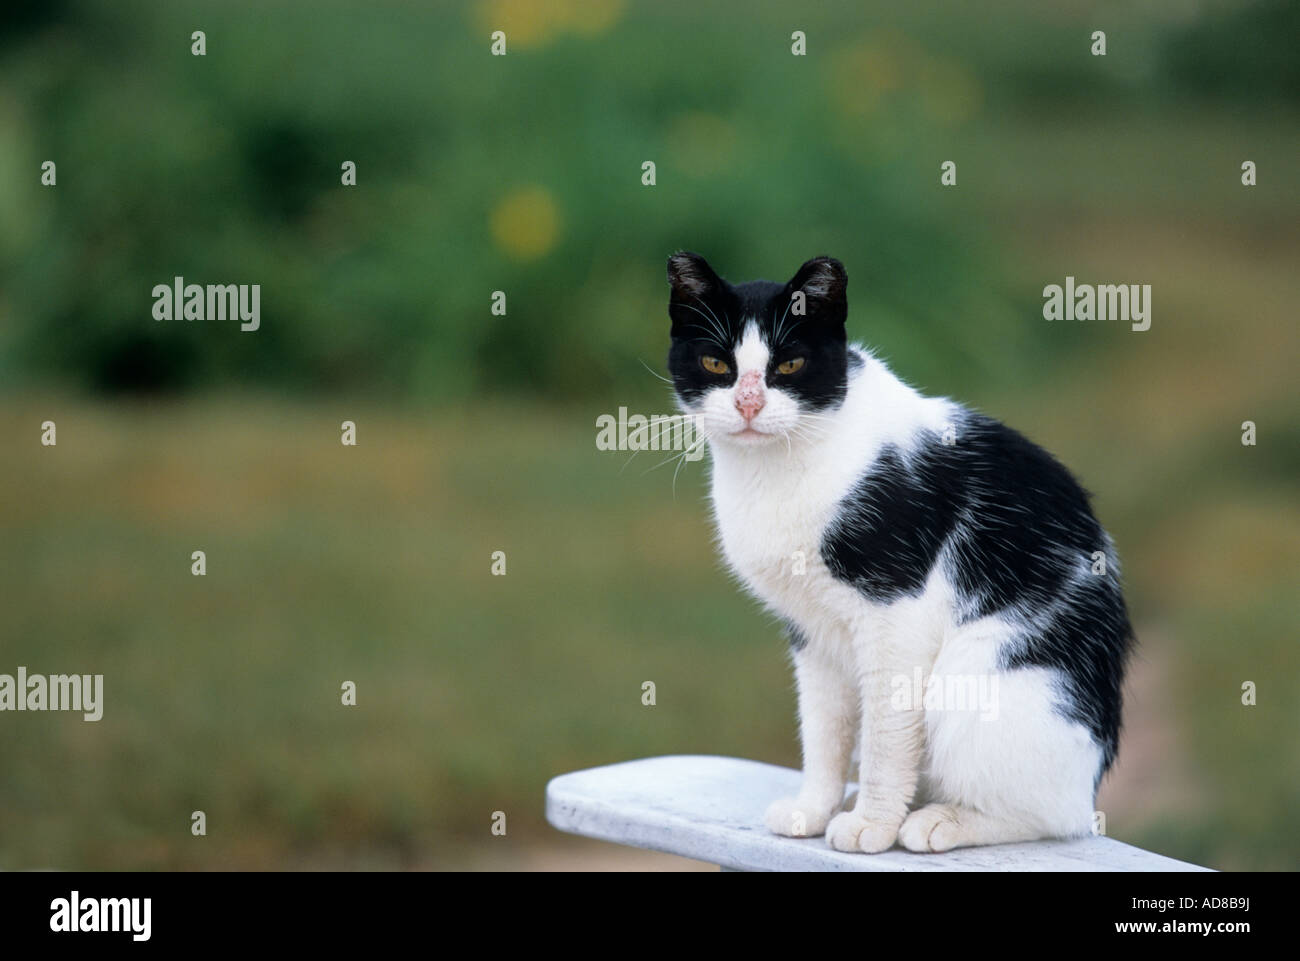 Feline Cat Black White Stock Photos & Feline Cat Black White Stock ...